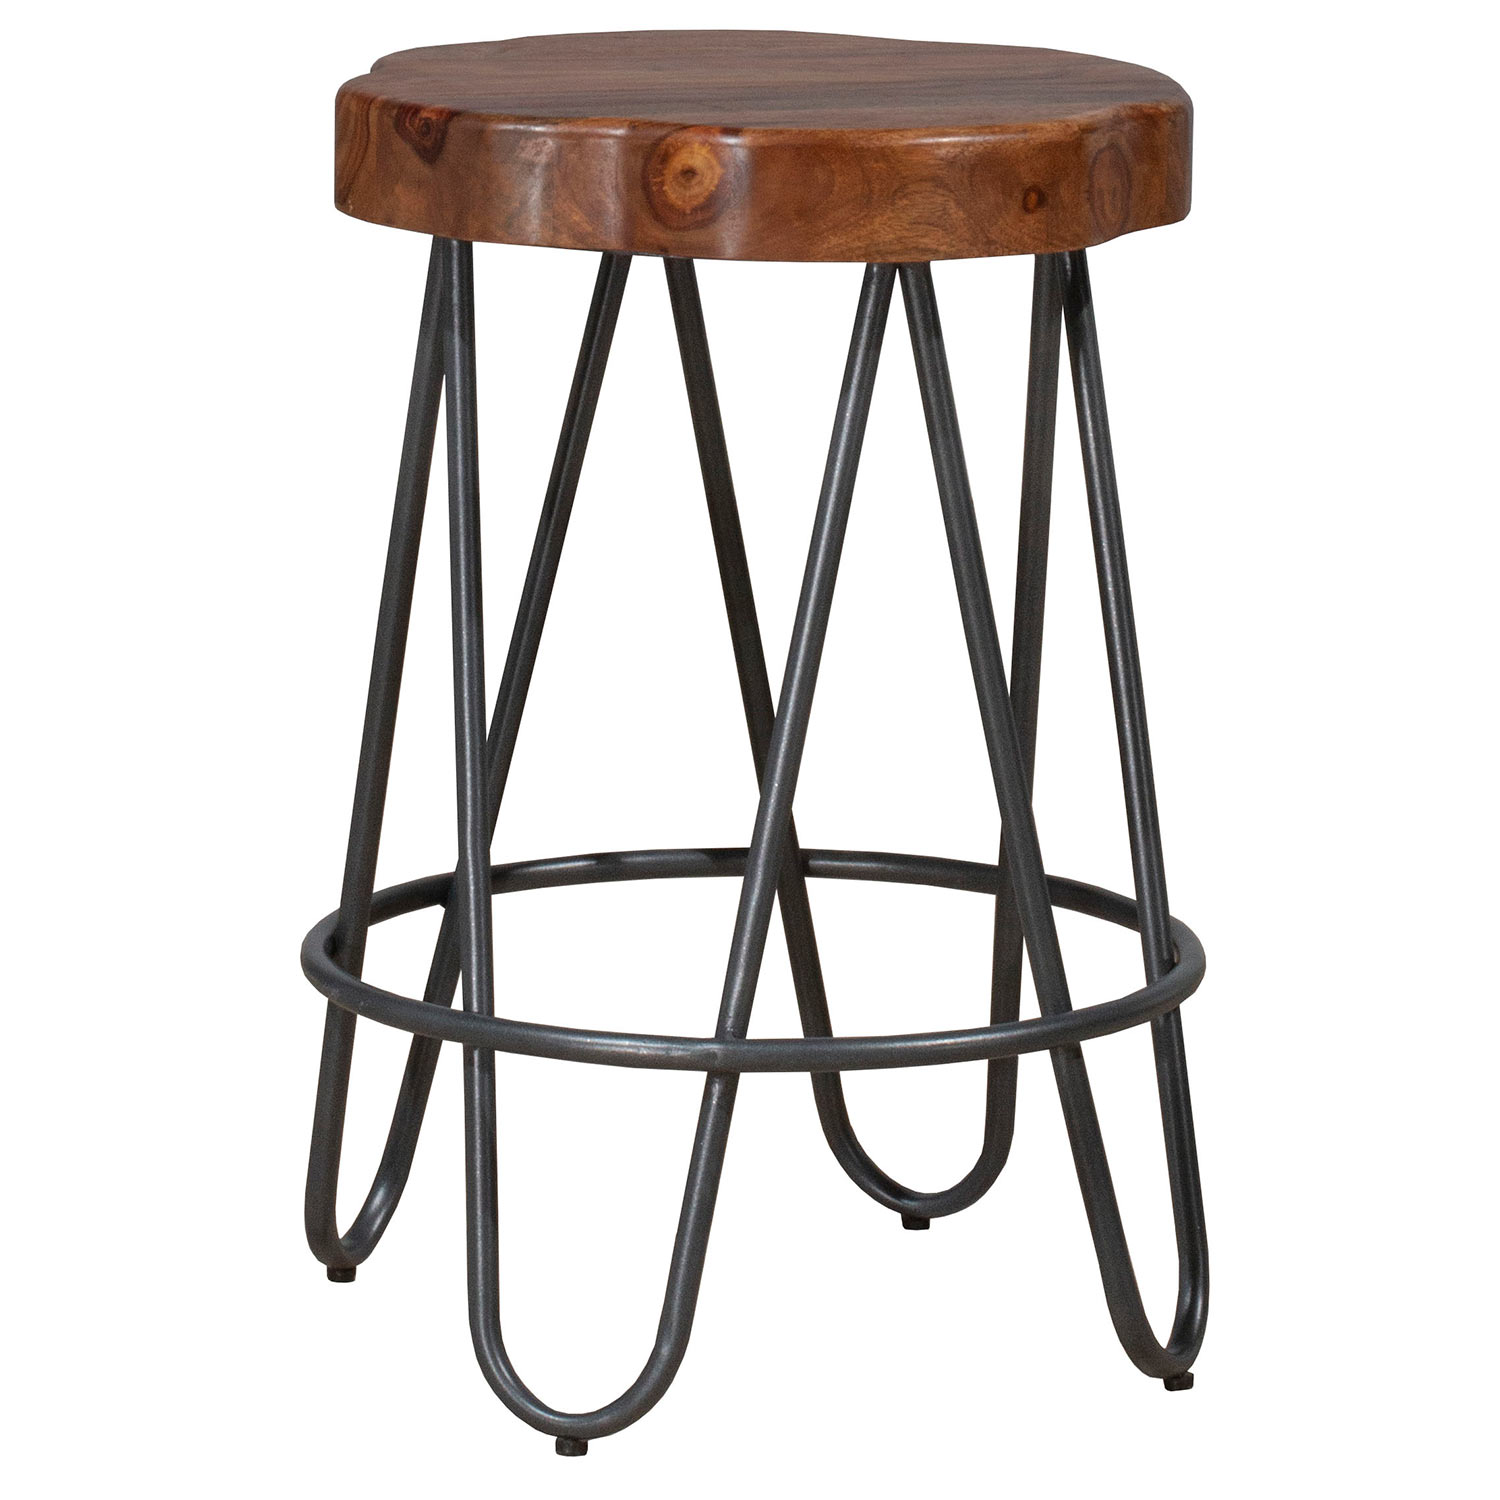 Hillsdale Pembra Backless Counter Height Stool - Natural Sheesham